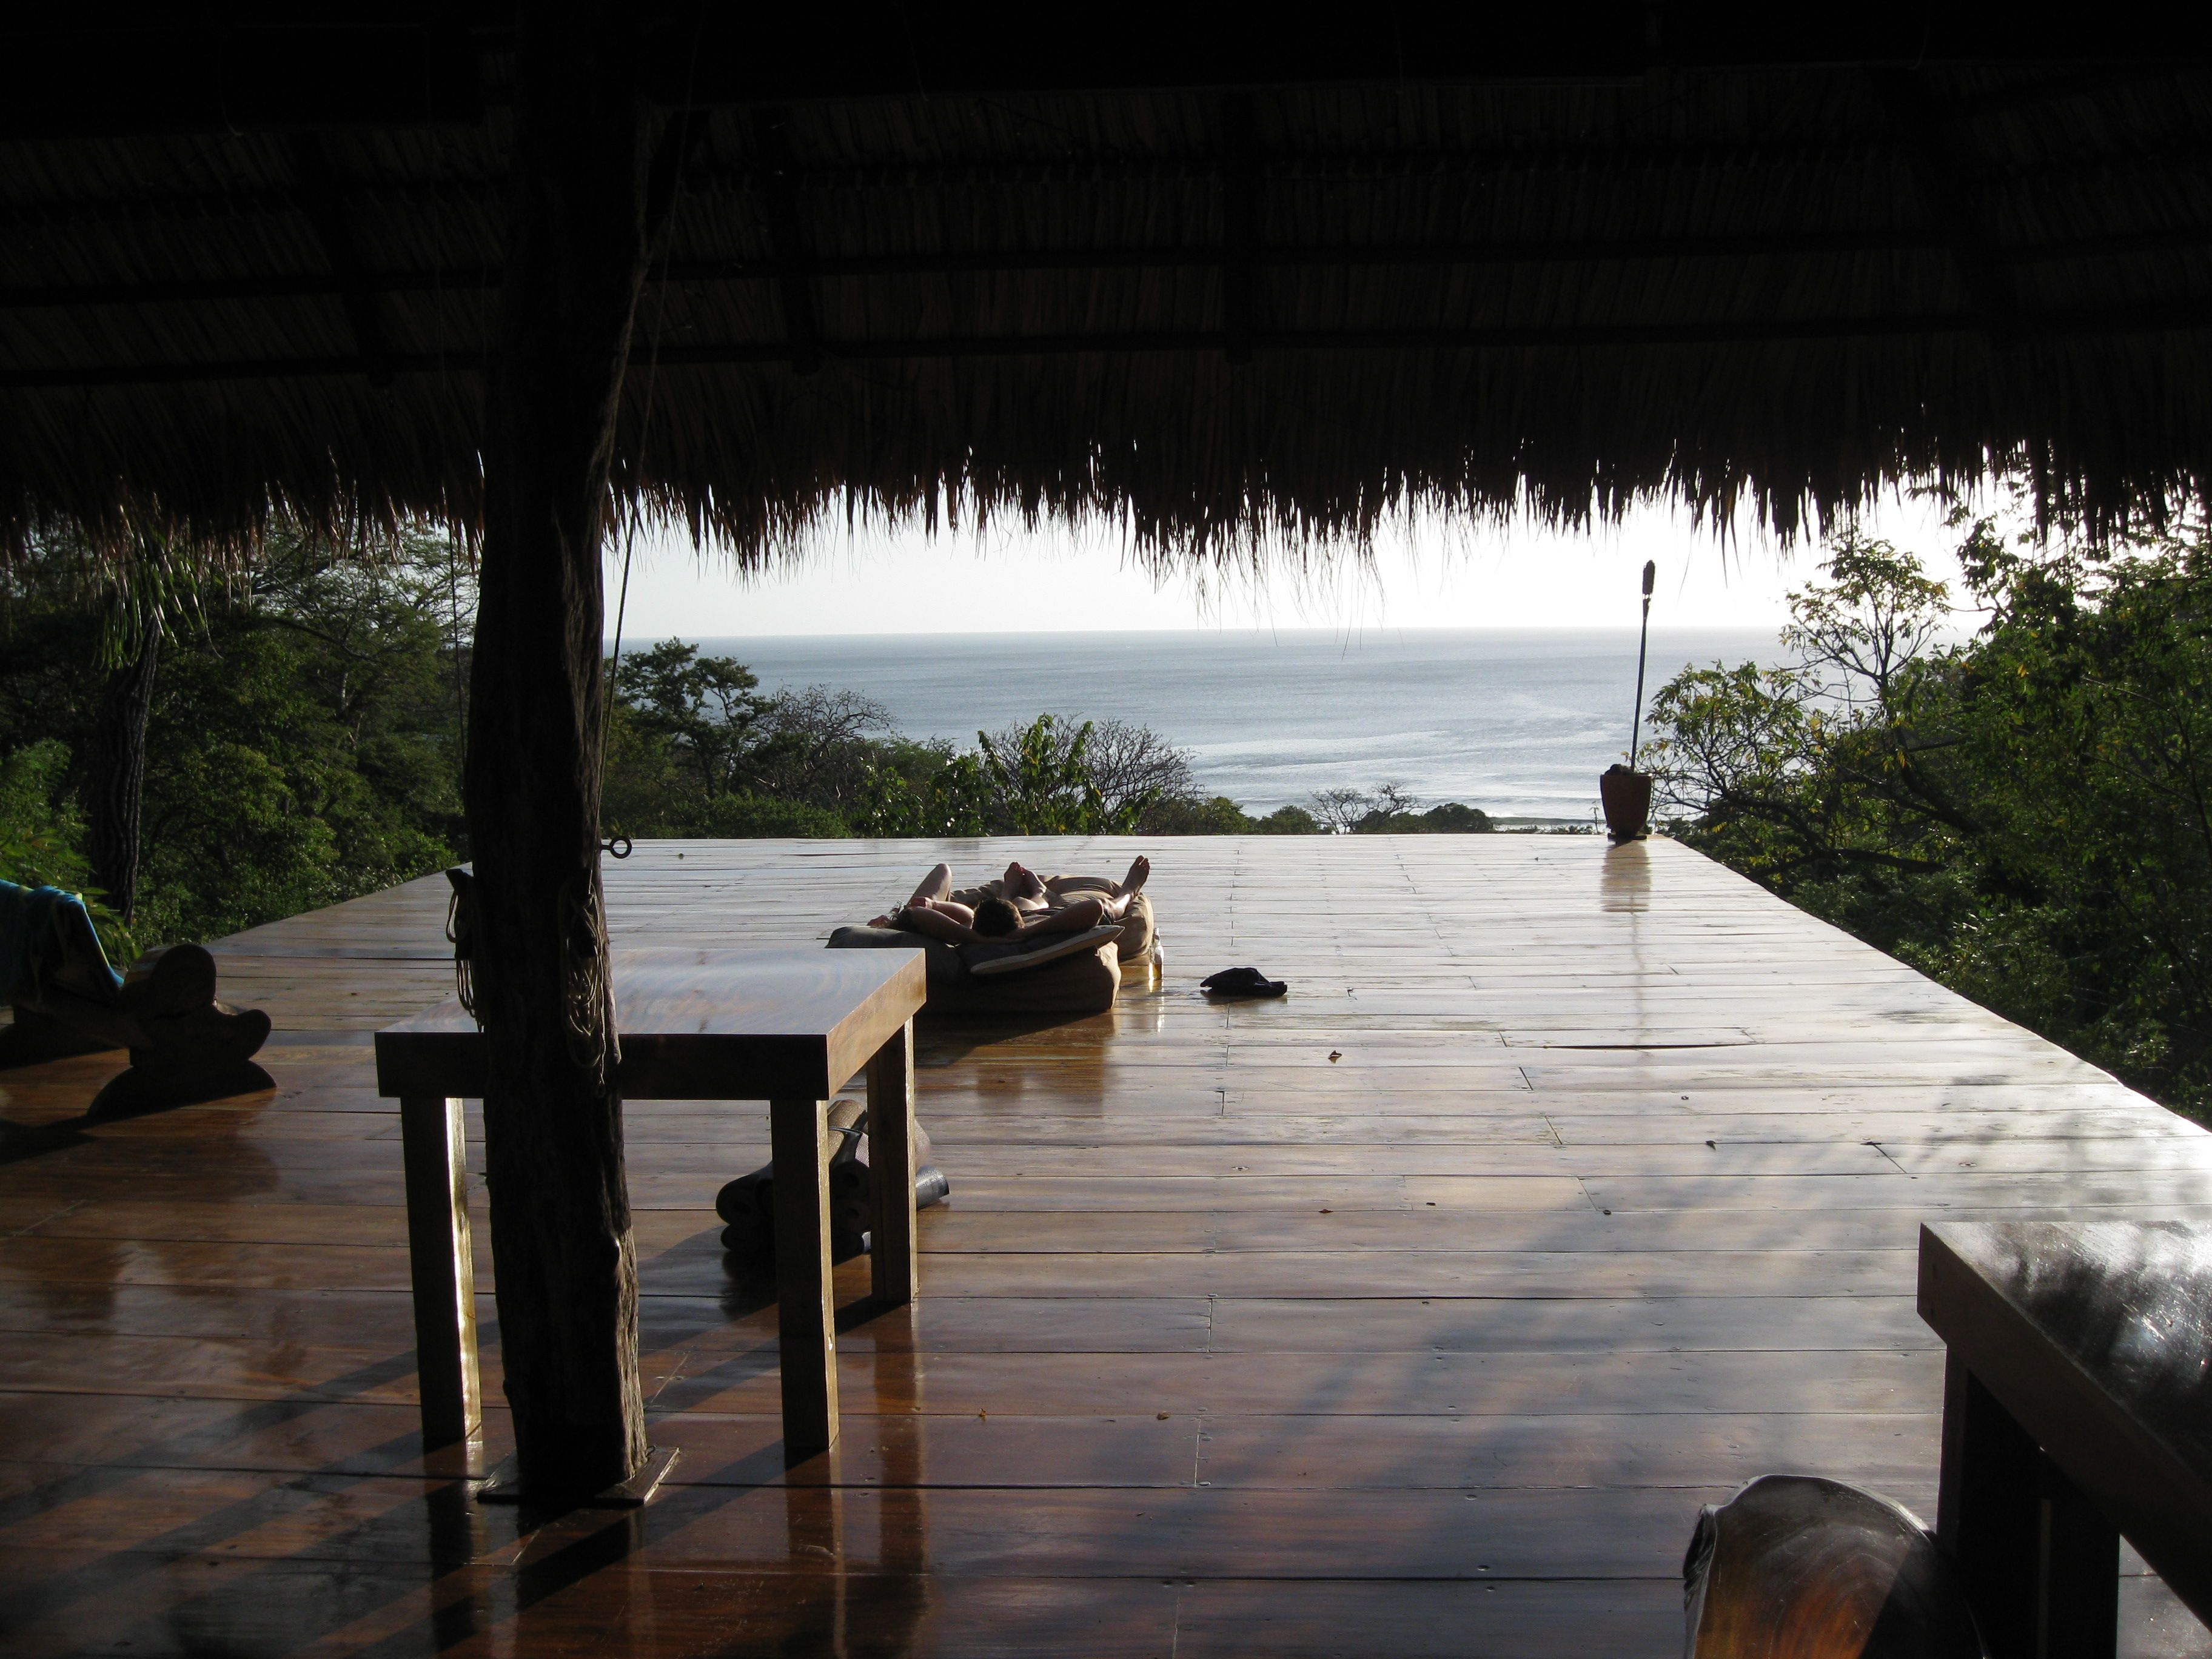 Yoga Deck Facing The Pacific Ocean Above The Rain Forest At Buena Vista Surf Club In Nicaragua Nicaragua Travel Caribbean Travel Global Travel